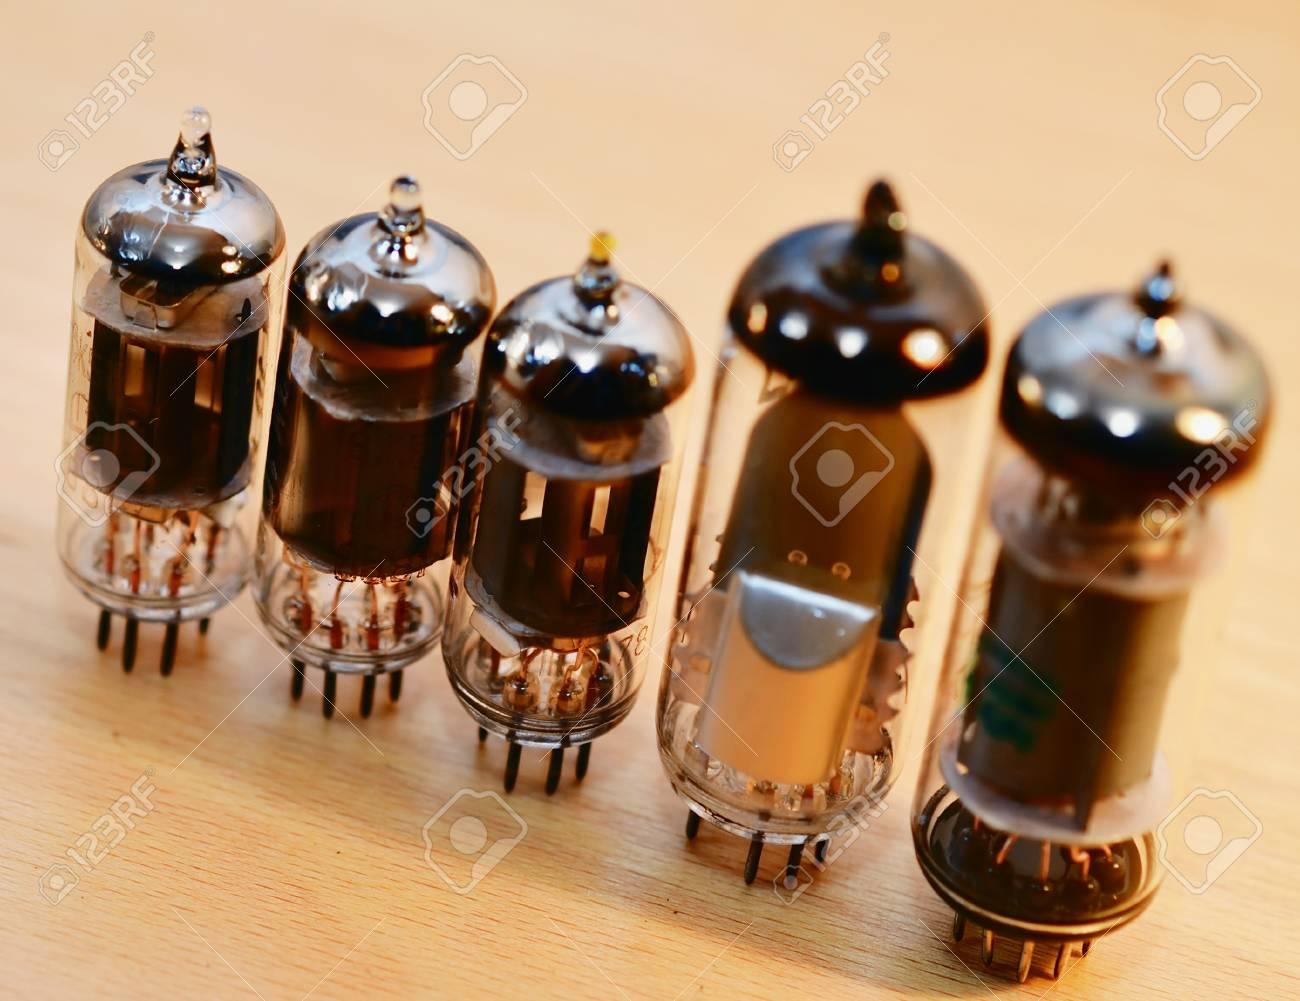 Old Vacuum Radio Tubes Stock Photo, Picture And Royalty Free Image. Image  10034205.